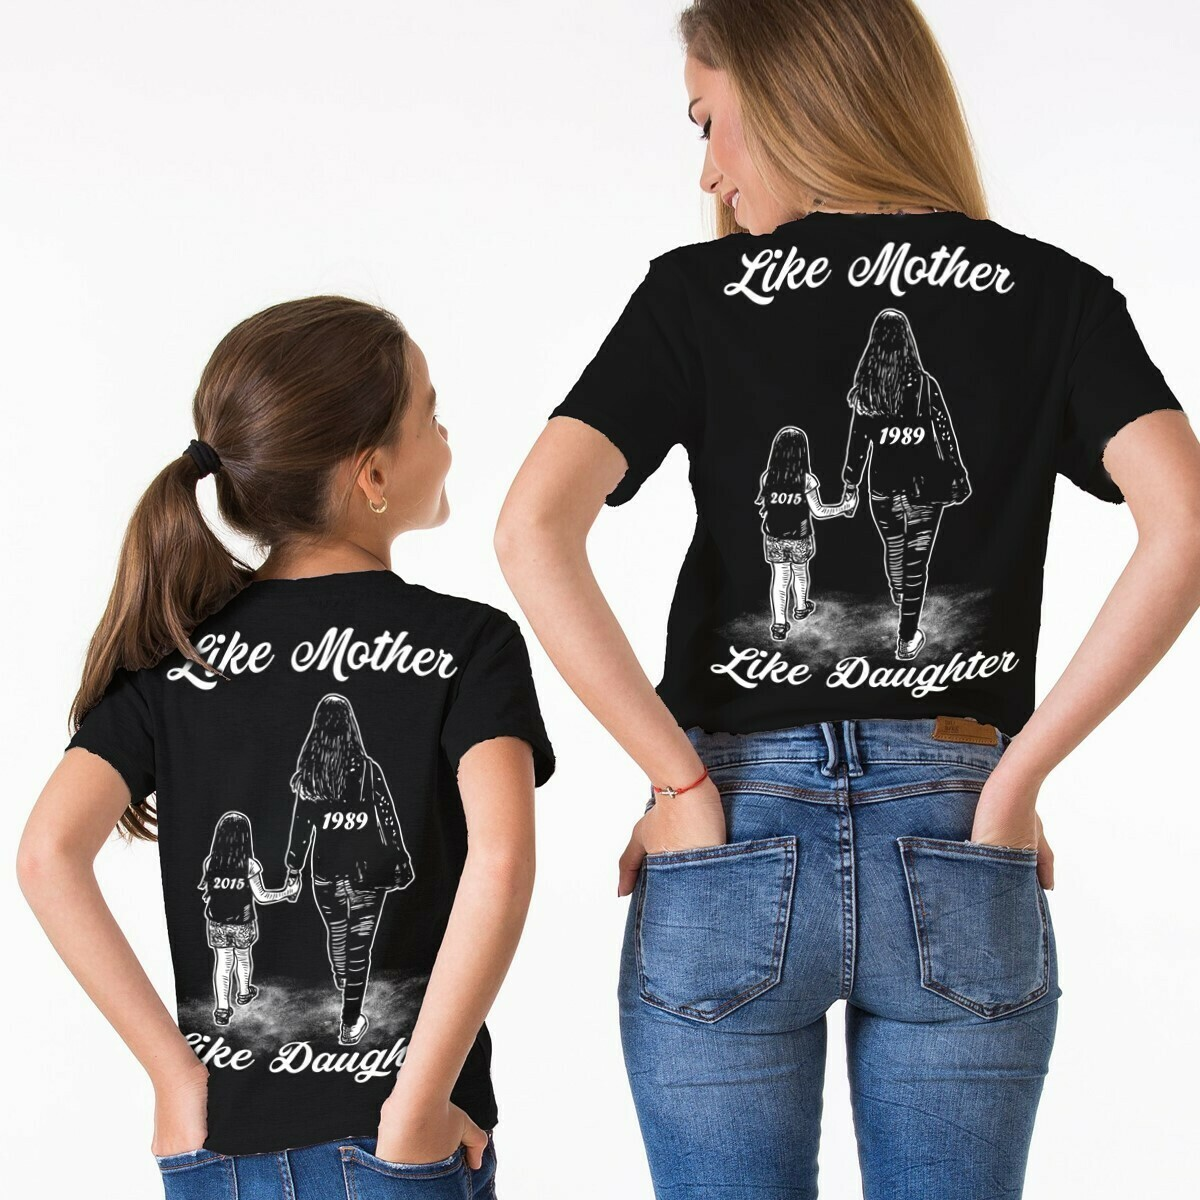 Pair of Like mother like daughter shirts, mother daughter shirts, mother and daughter shirts, matching mom and daughter shirts